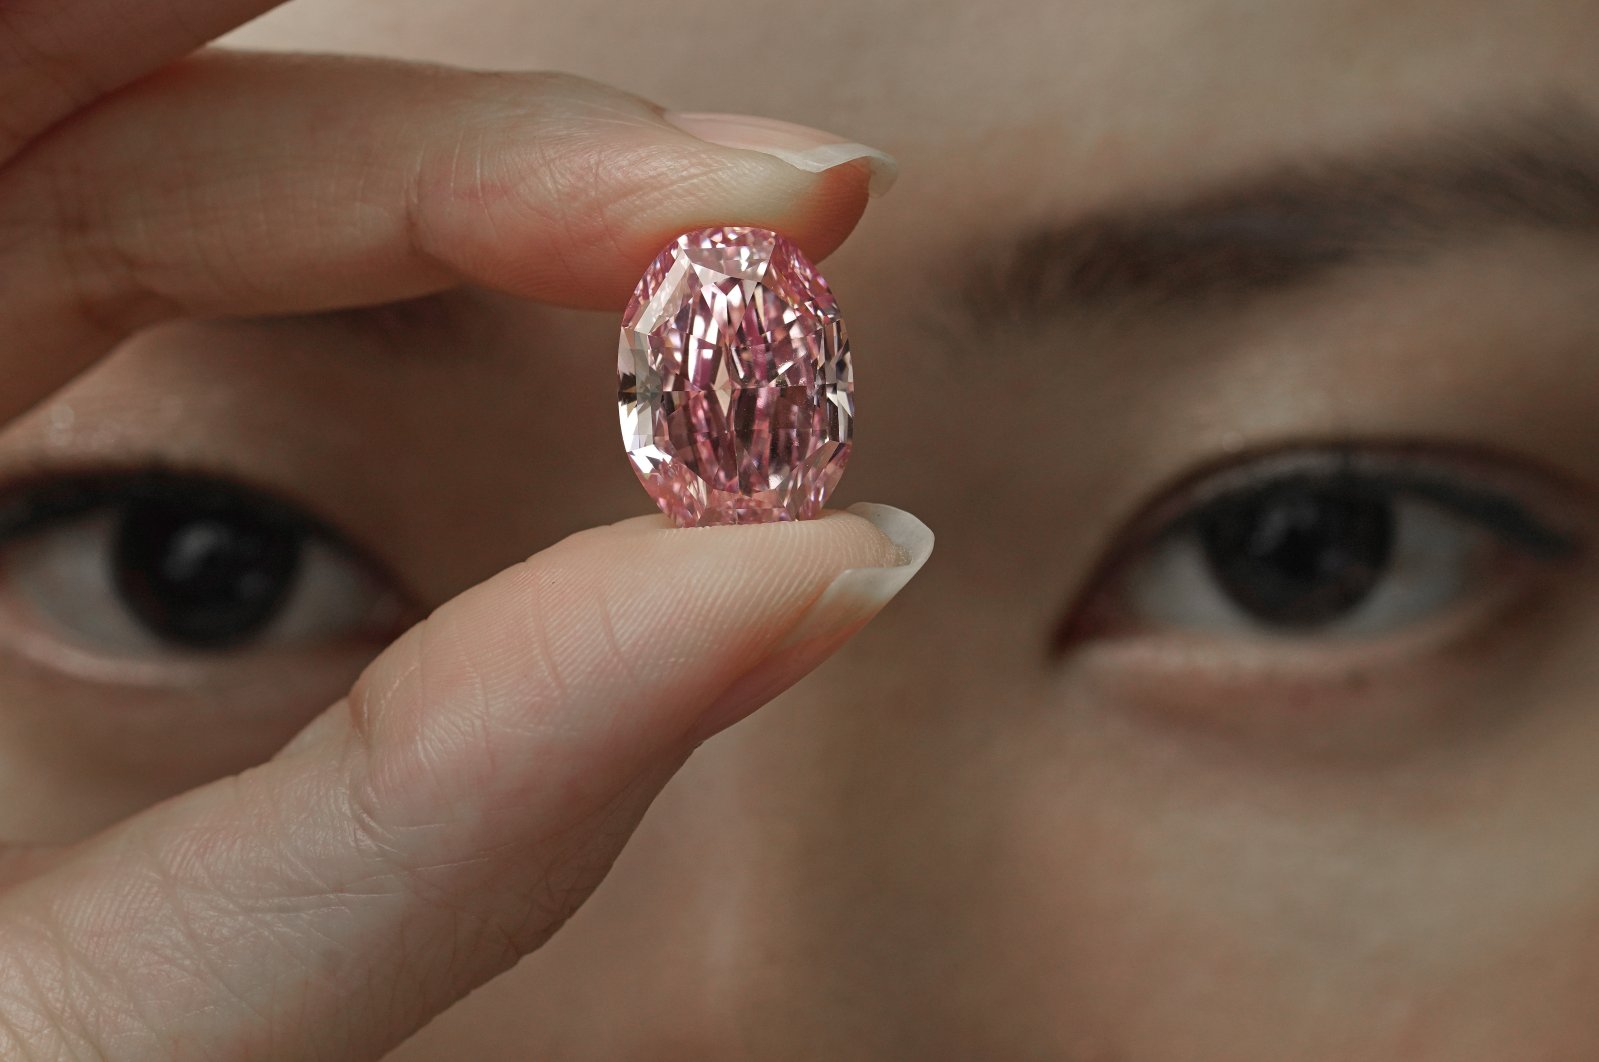 A model displays an ultra-rare 14.83-carat diamond that is one of the largest internally flawless fancy vivid purple-pink gem ever graded by the Gemological Institute of America at a Sotheby's auction room in Hong Kong on Oct. 12, 2020. (AP Photo)